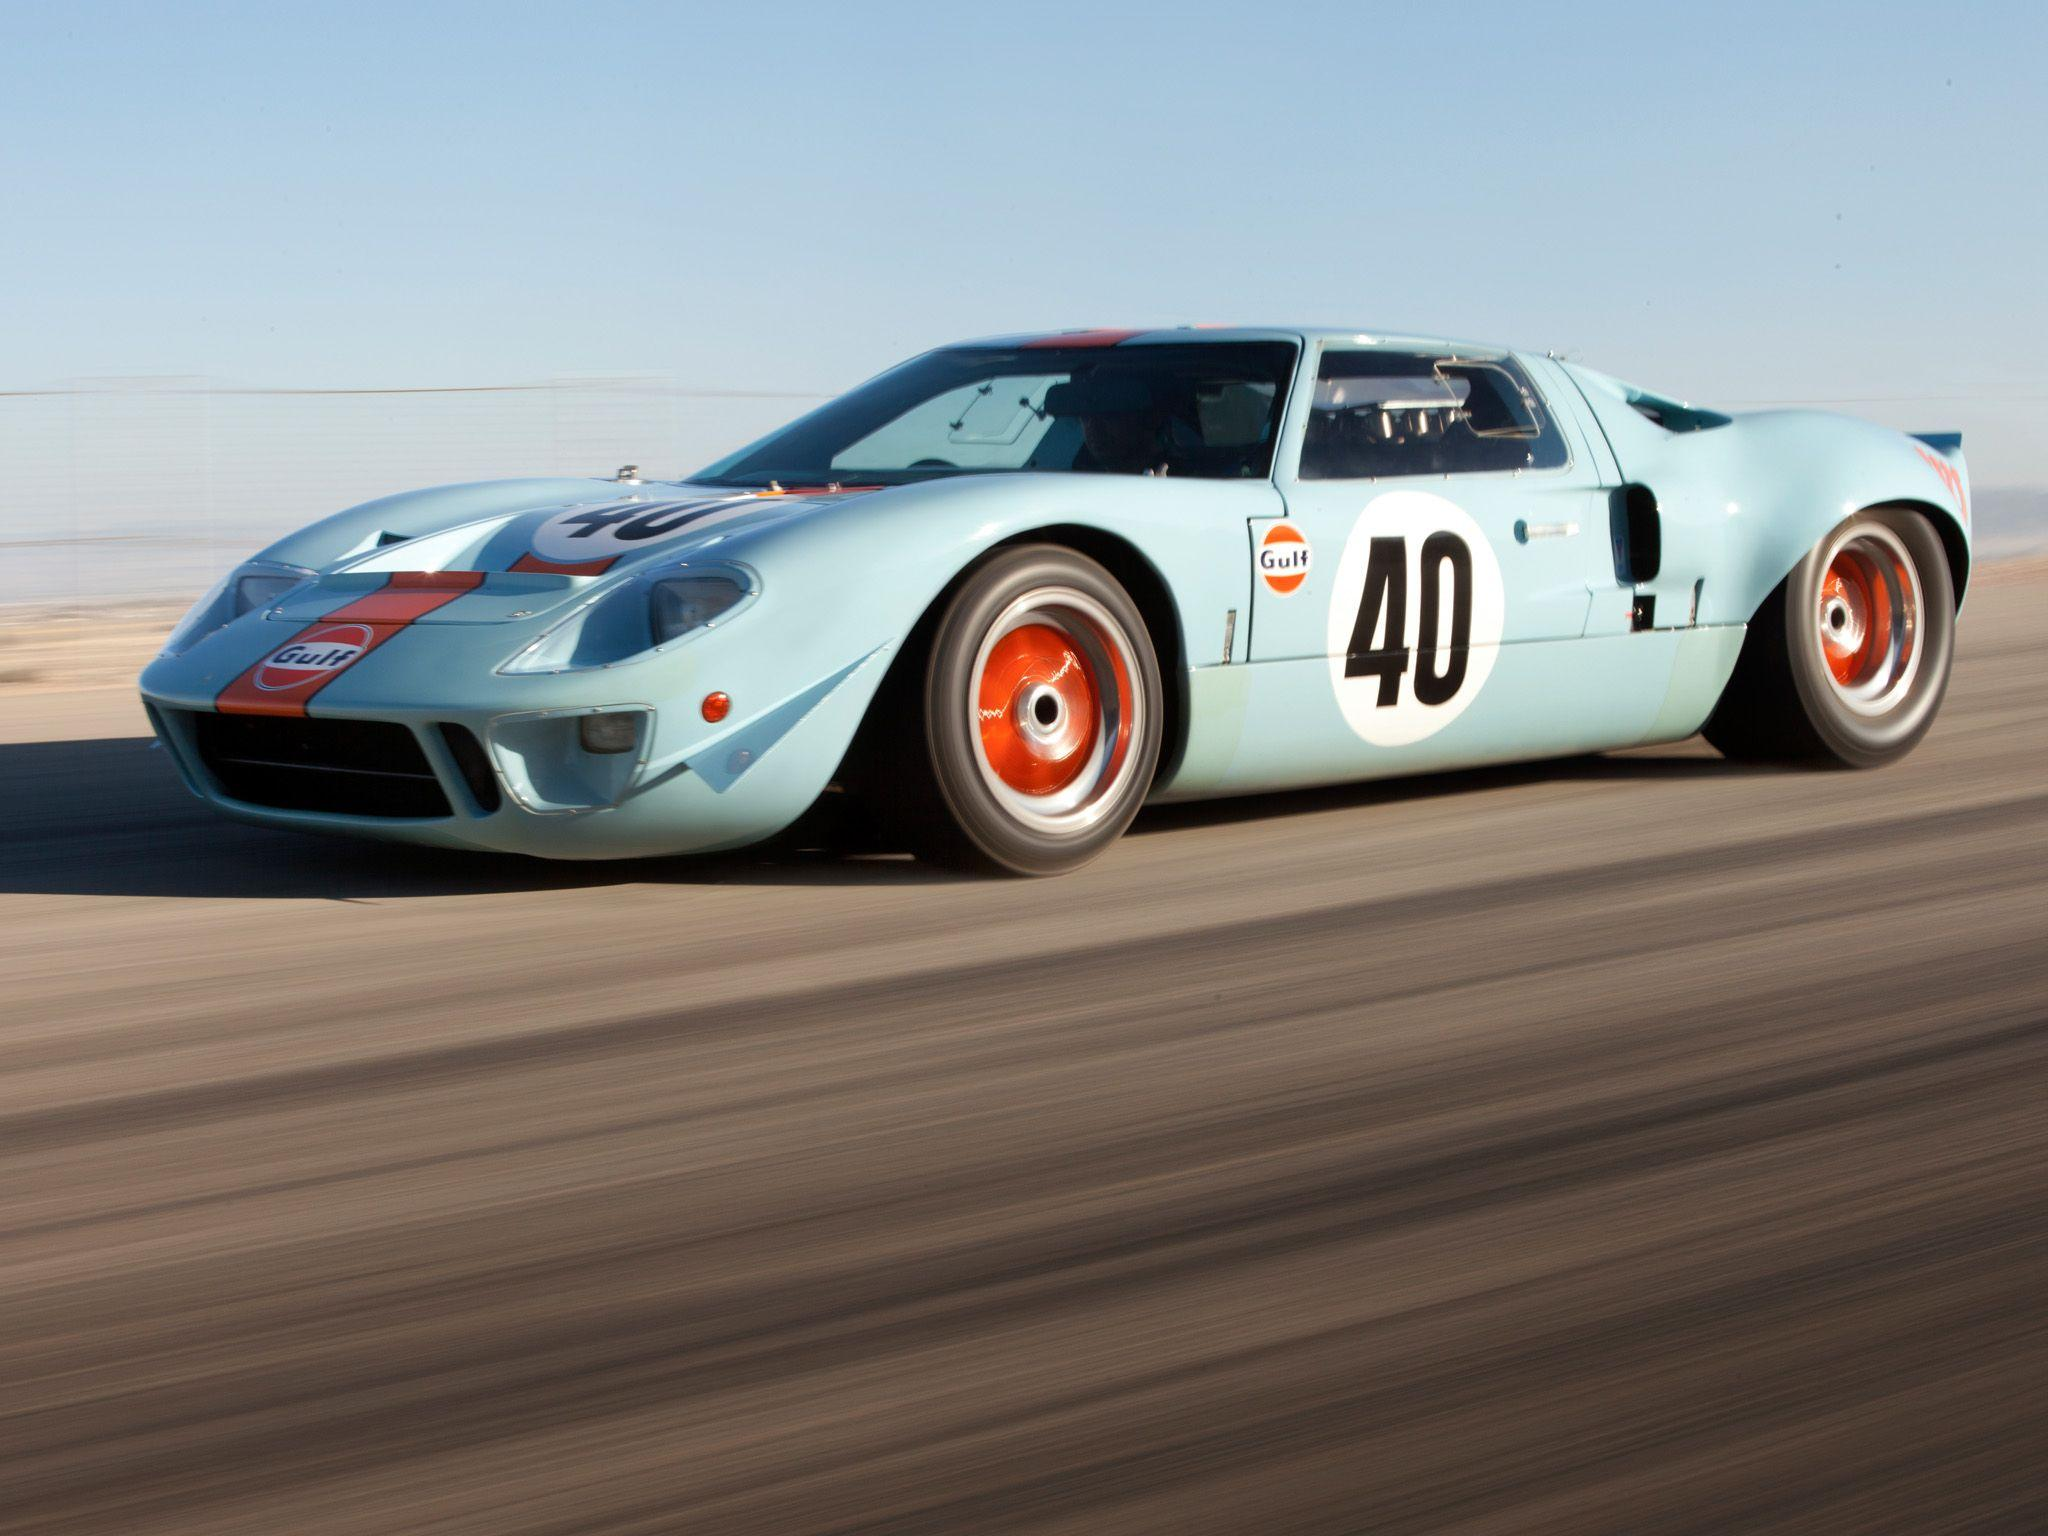 1968 ford gt40 gulf oil le mans race racing supercar classic e